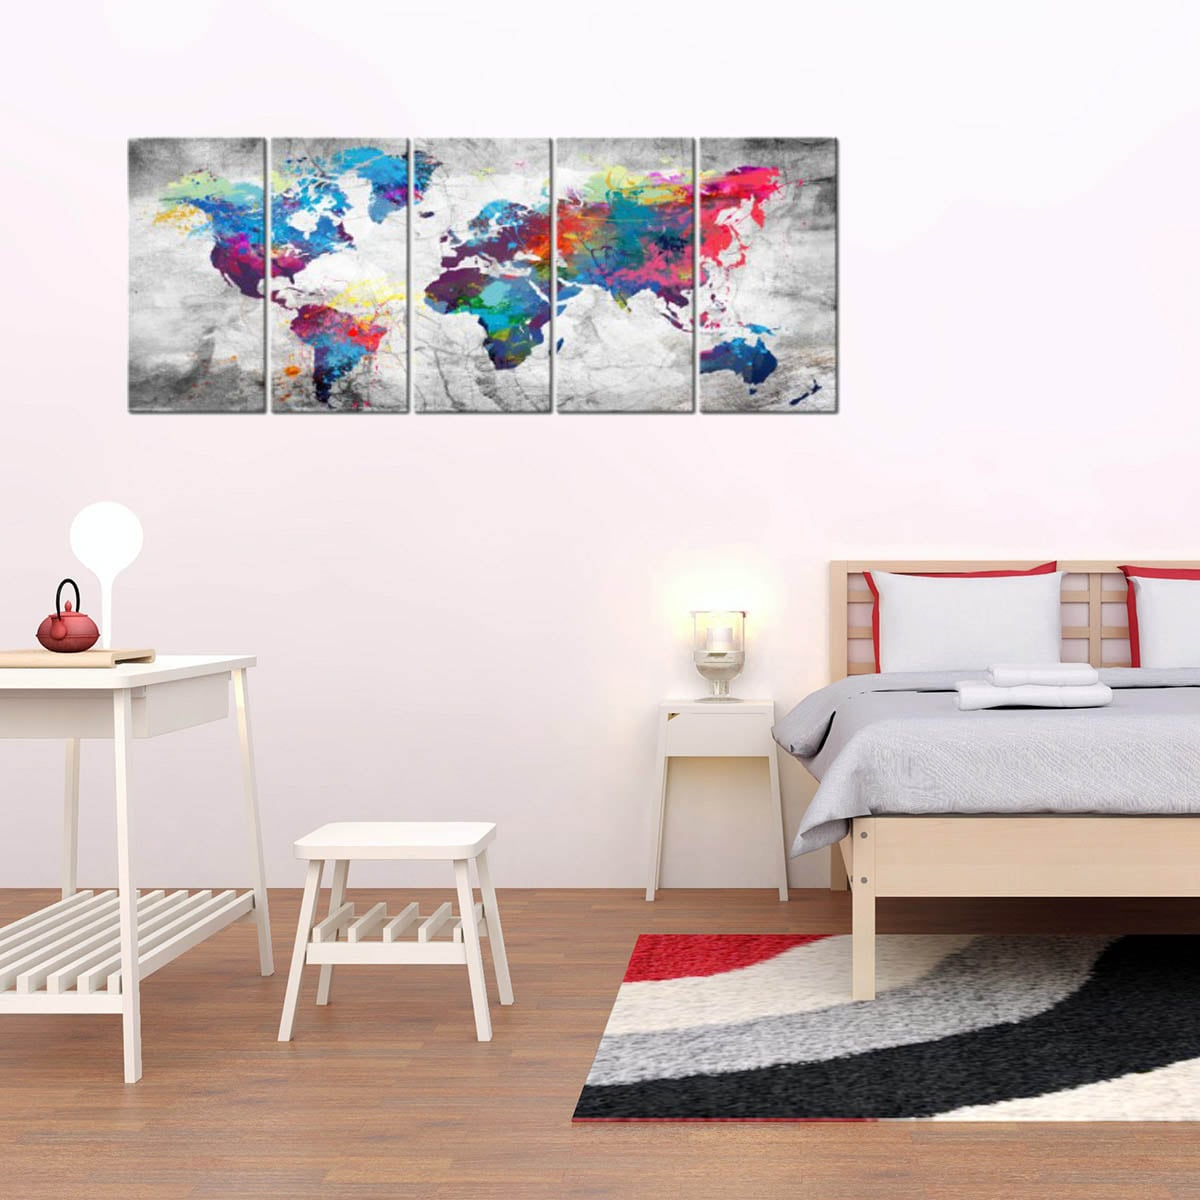 Big wall canvas print of the world map for a modern decoration in grey